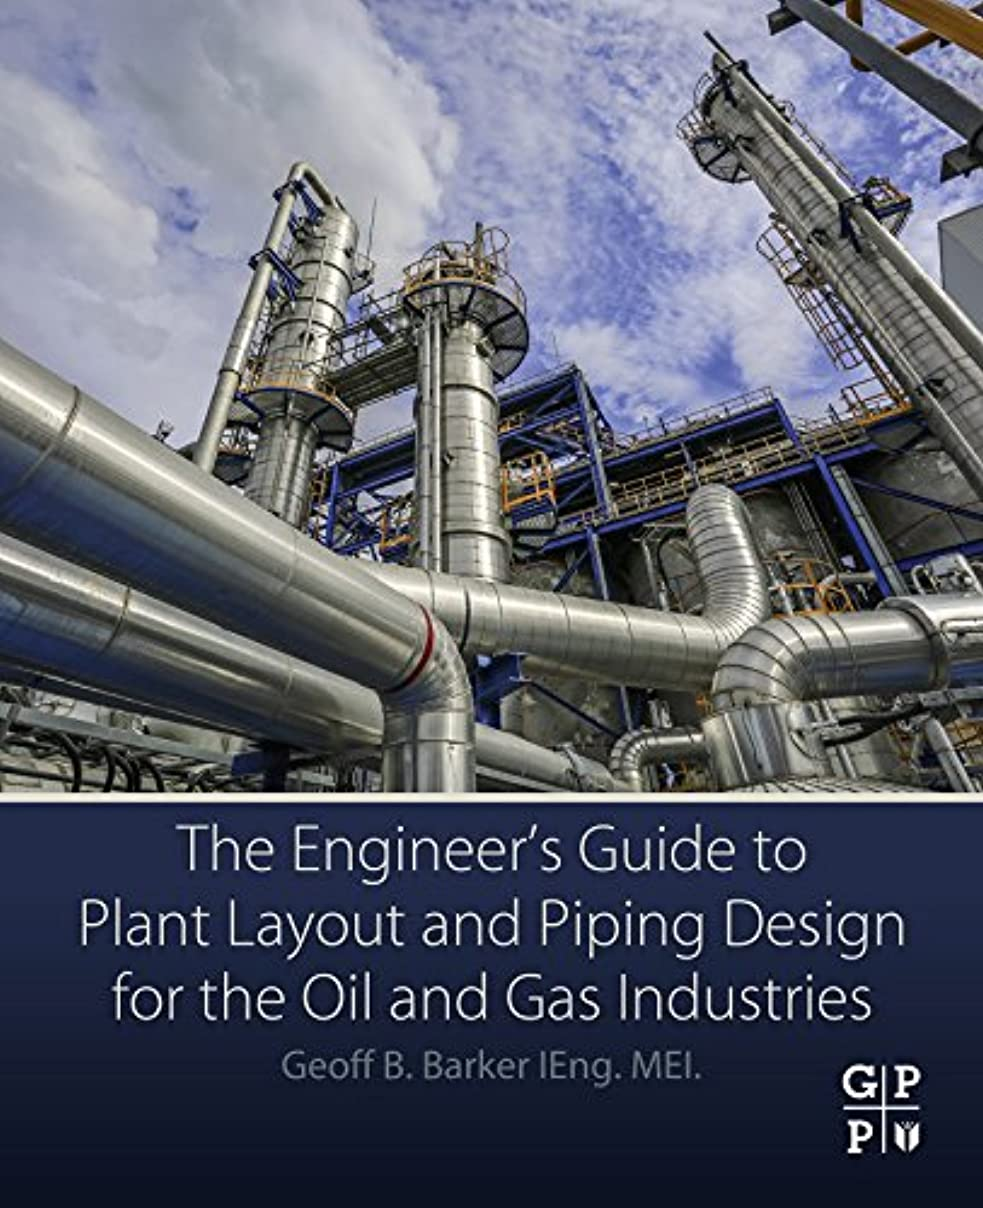 The Engineer's Guide to Plant Layout and Piping Design for the Oil and Gas Industries lm45743540554